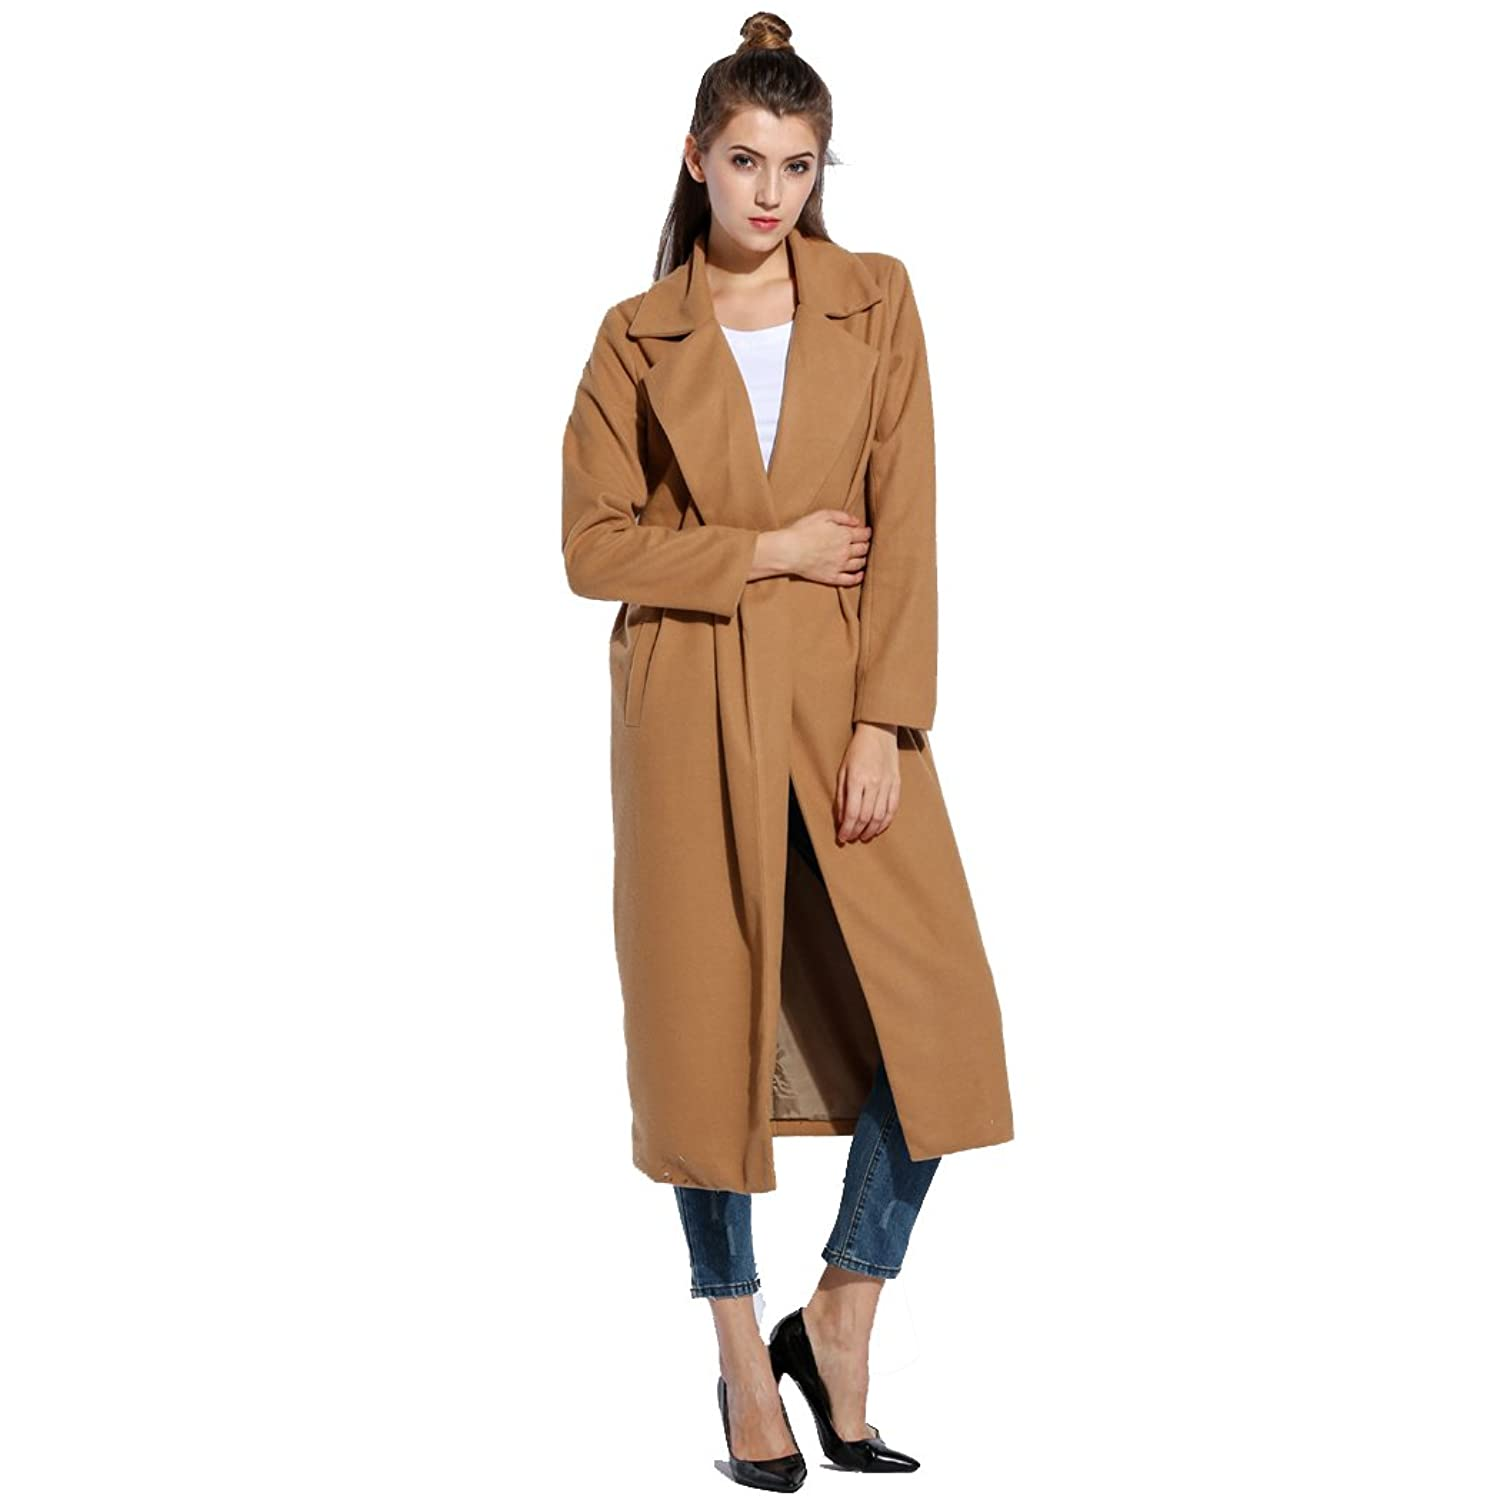 SFY New Casual Women Warm Winter Wool Trench Coat Parka Long Jacket Outwear